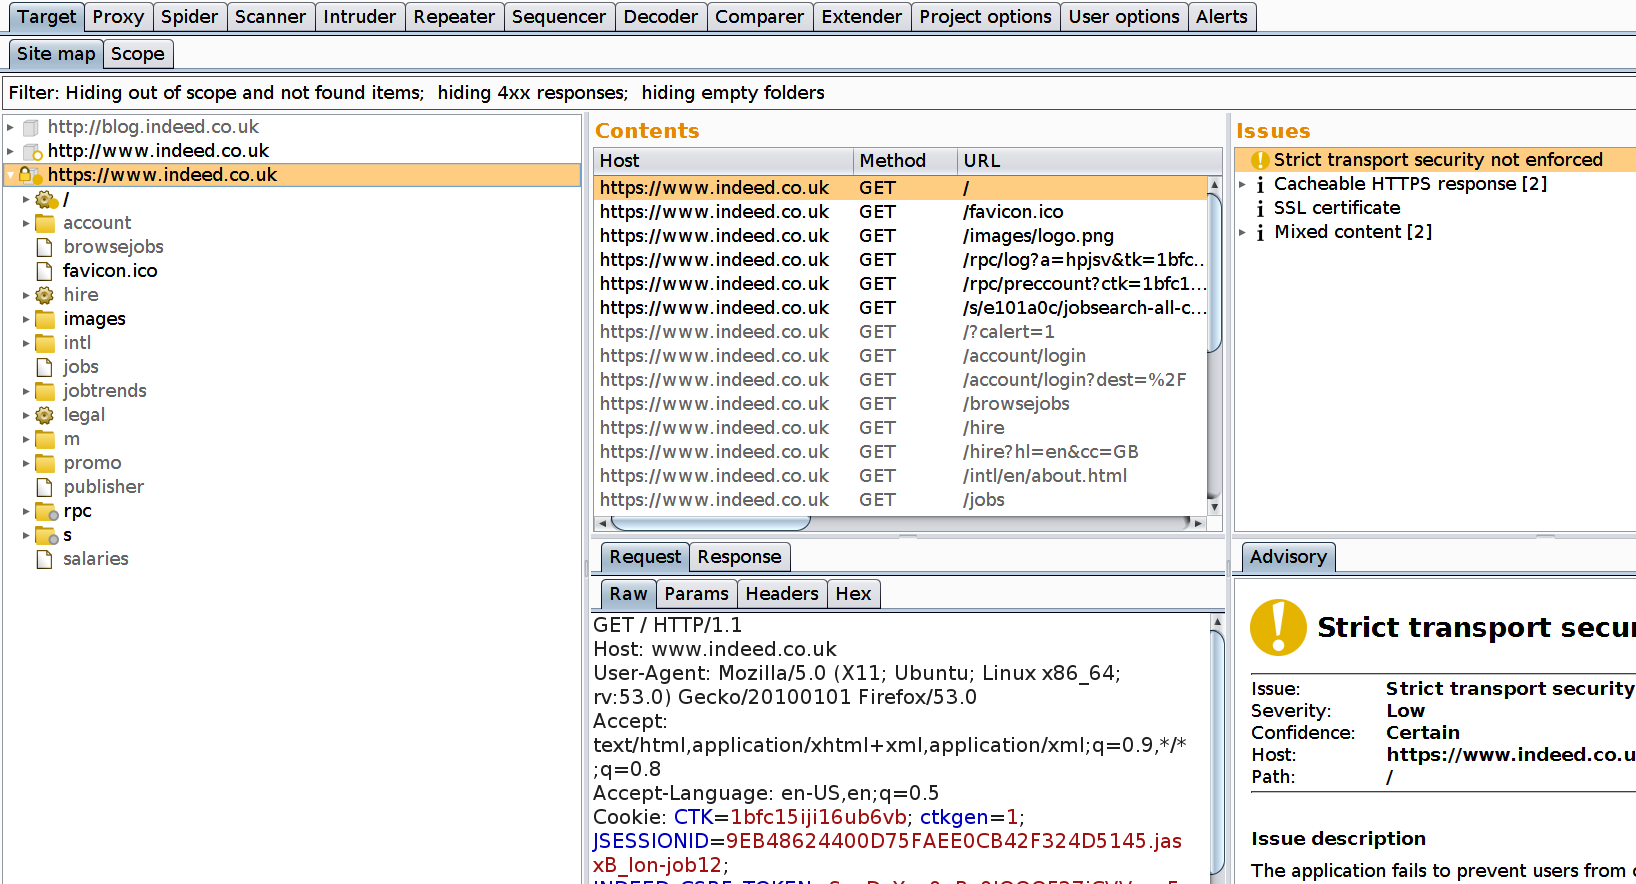 Burp suite target scope